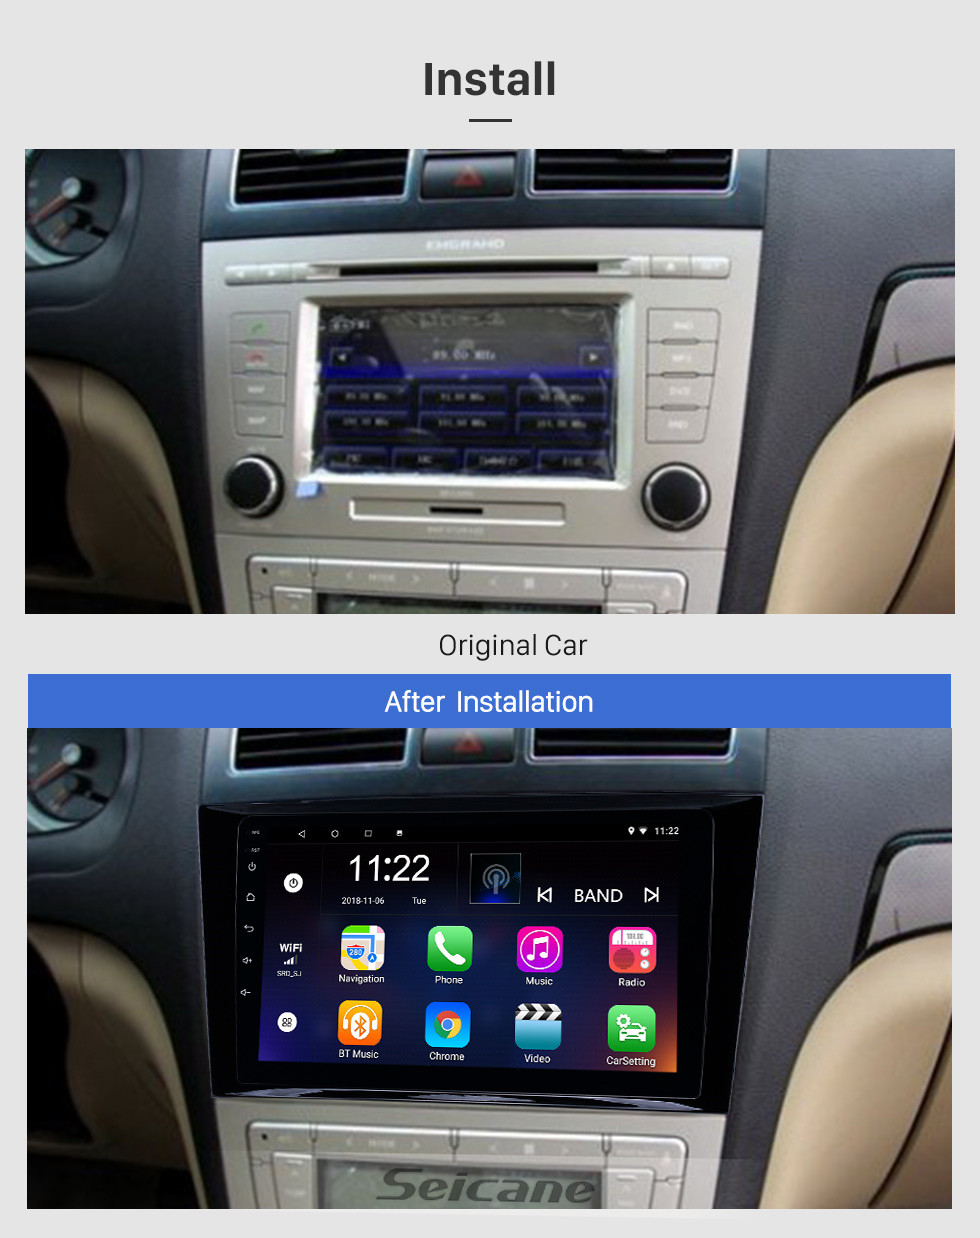 Seicane HD Touchscreen 9 inch Android 10.0 GPS Navigation Radio for 2009-2015 Geely Emgrand EC8 with Bluetooth AUX support Carplay TPMS